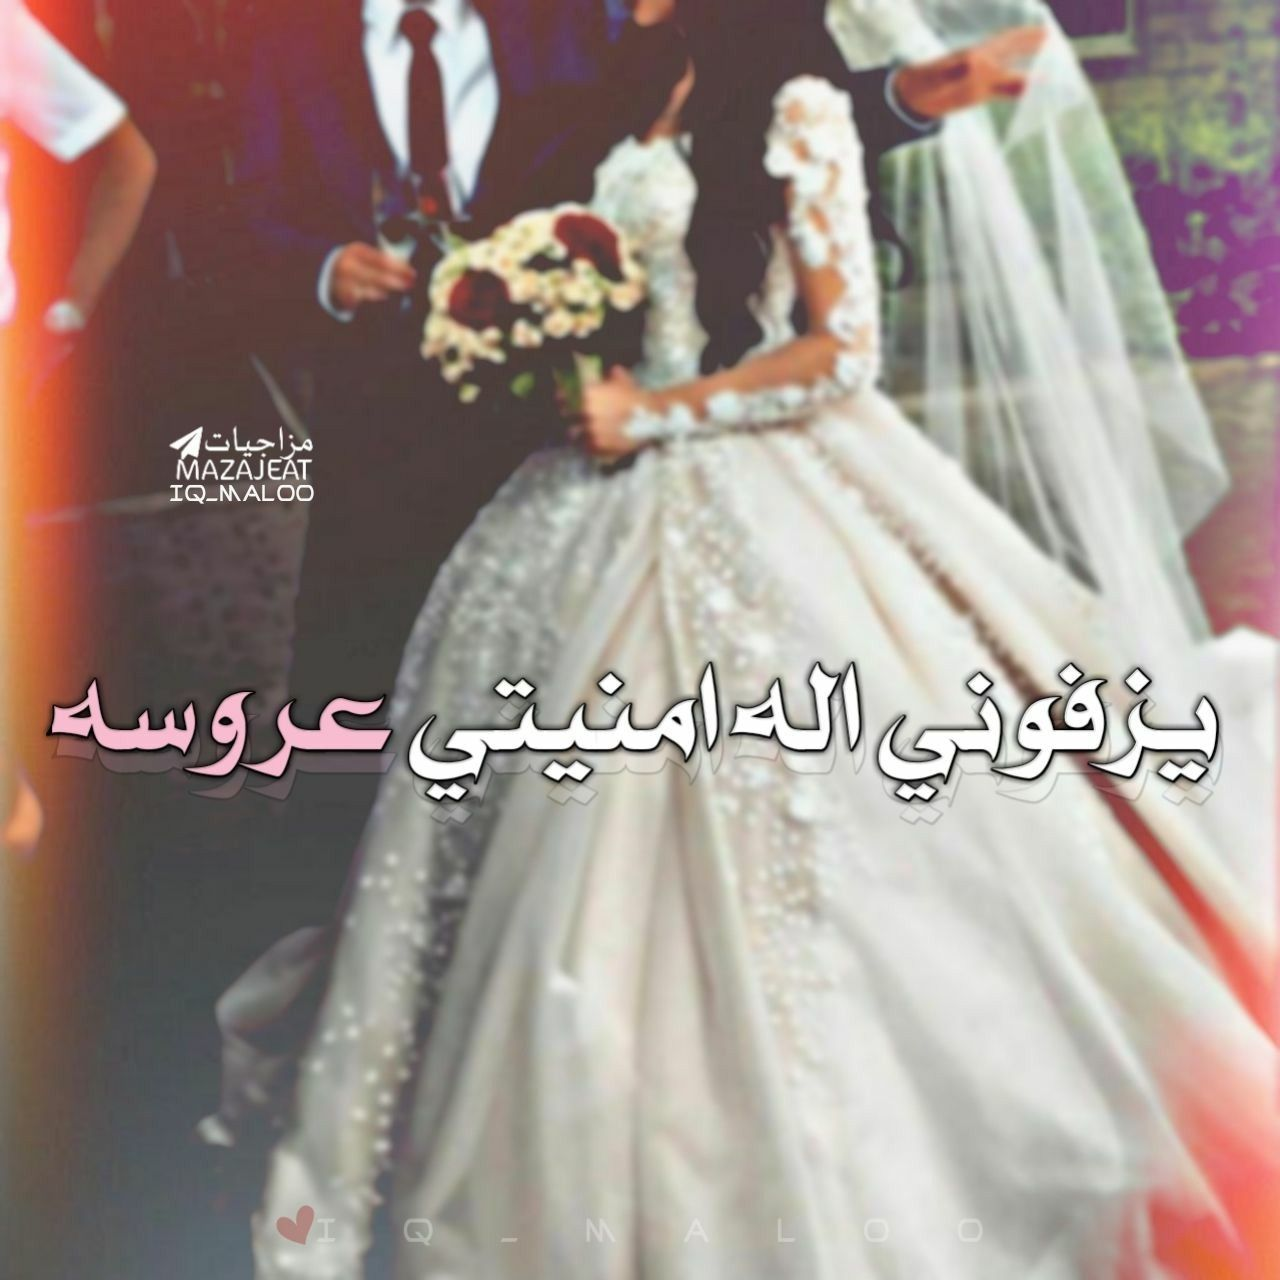 Pin By Bobo Safaa88 On Wedding Dresses انا العروسه Romantic Couples Photography Bride Quotes Photo Ideas Girl